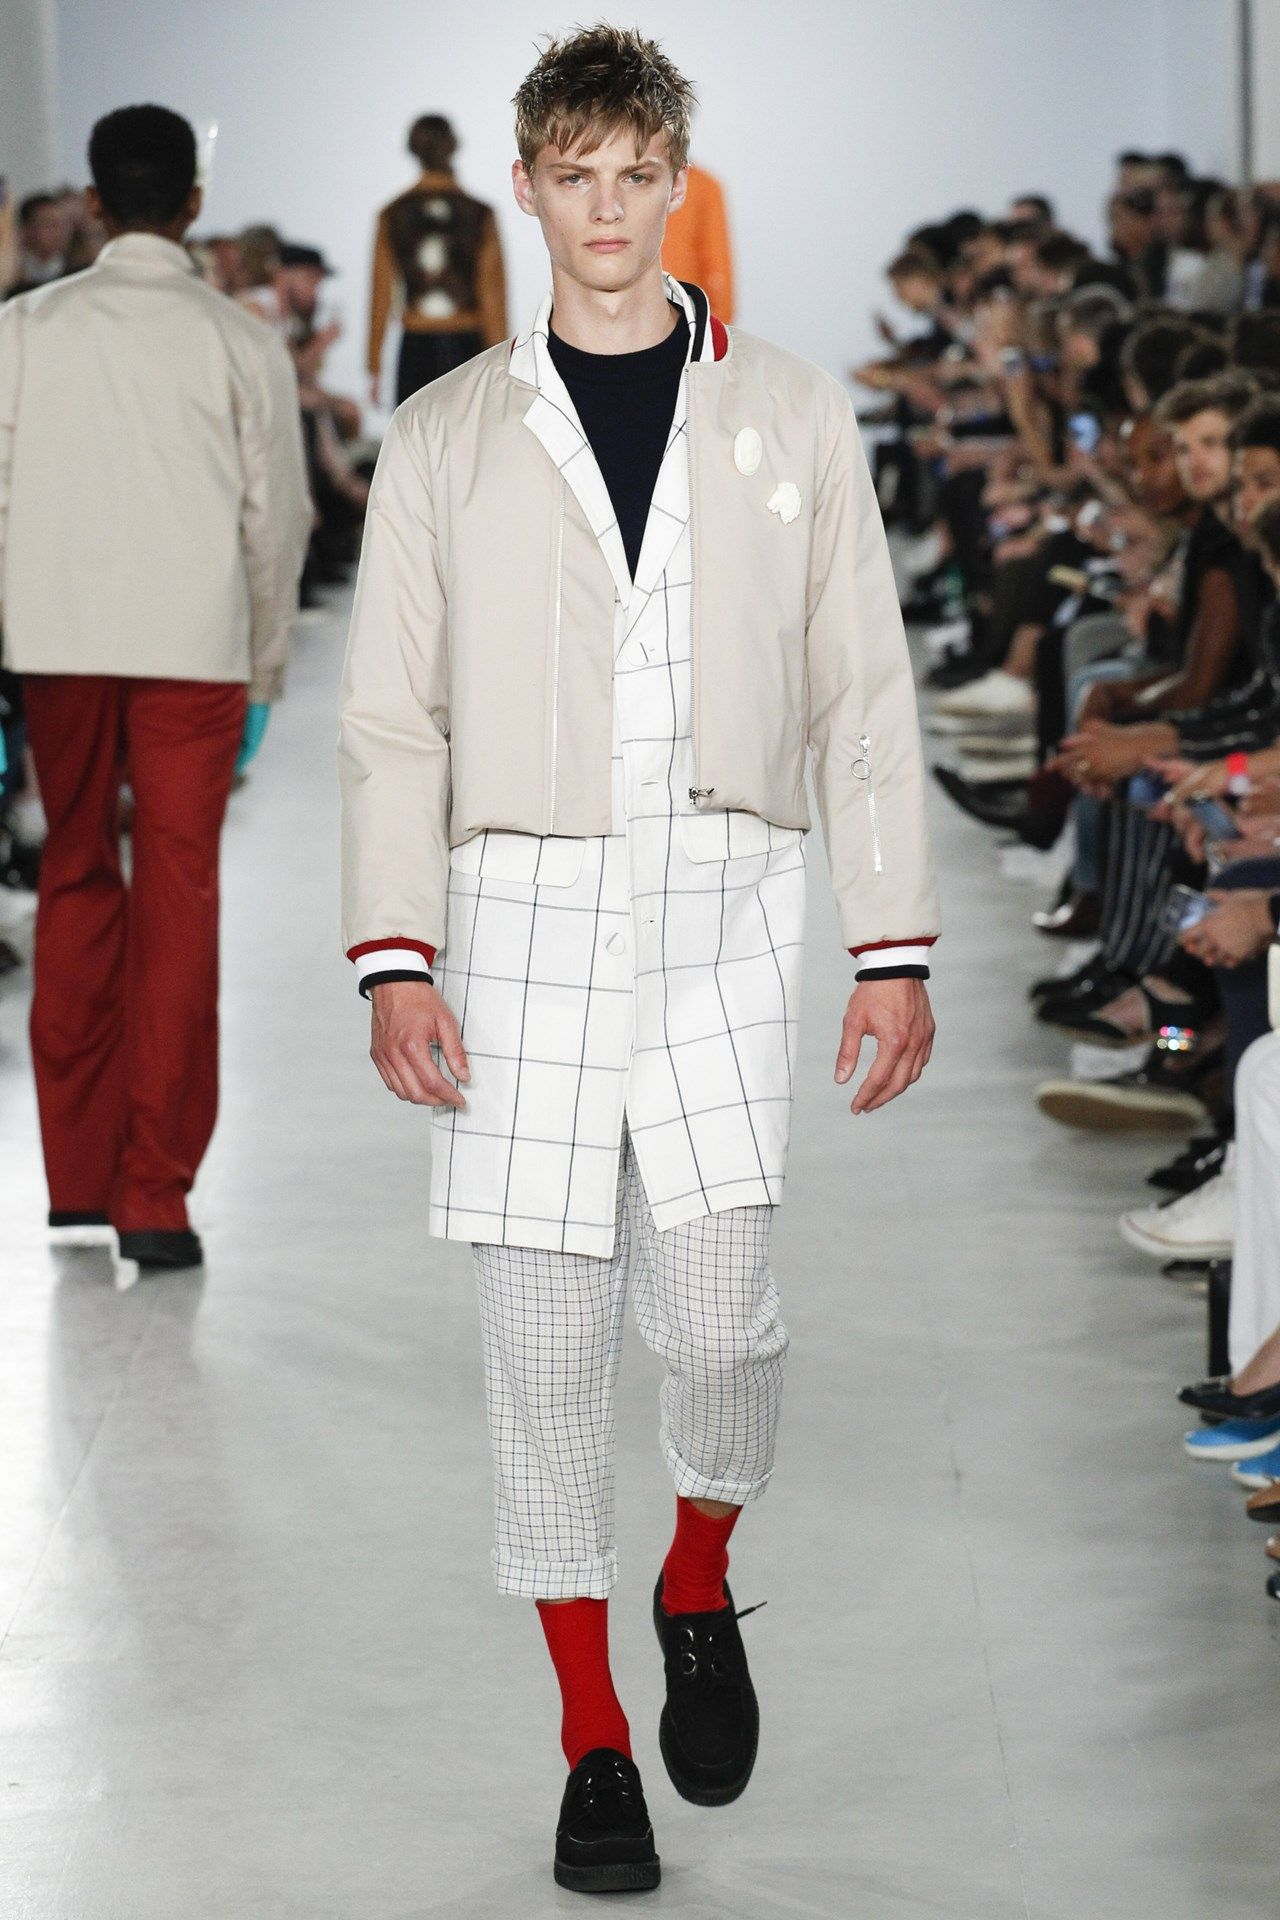 agi sam spring summer 2017 menswear collection fashion weeks was the question posed at agi sam s show this morning sam looked to his own childhood drawing inspiration from his father and mother who